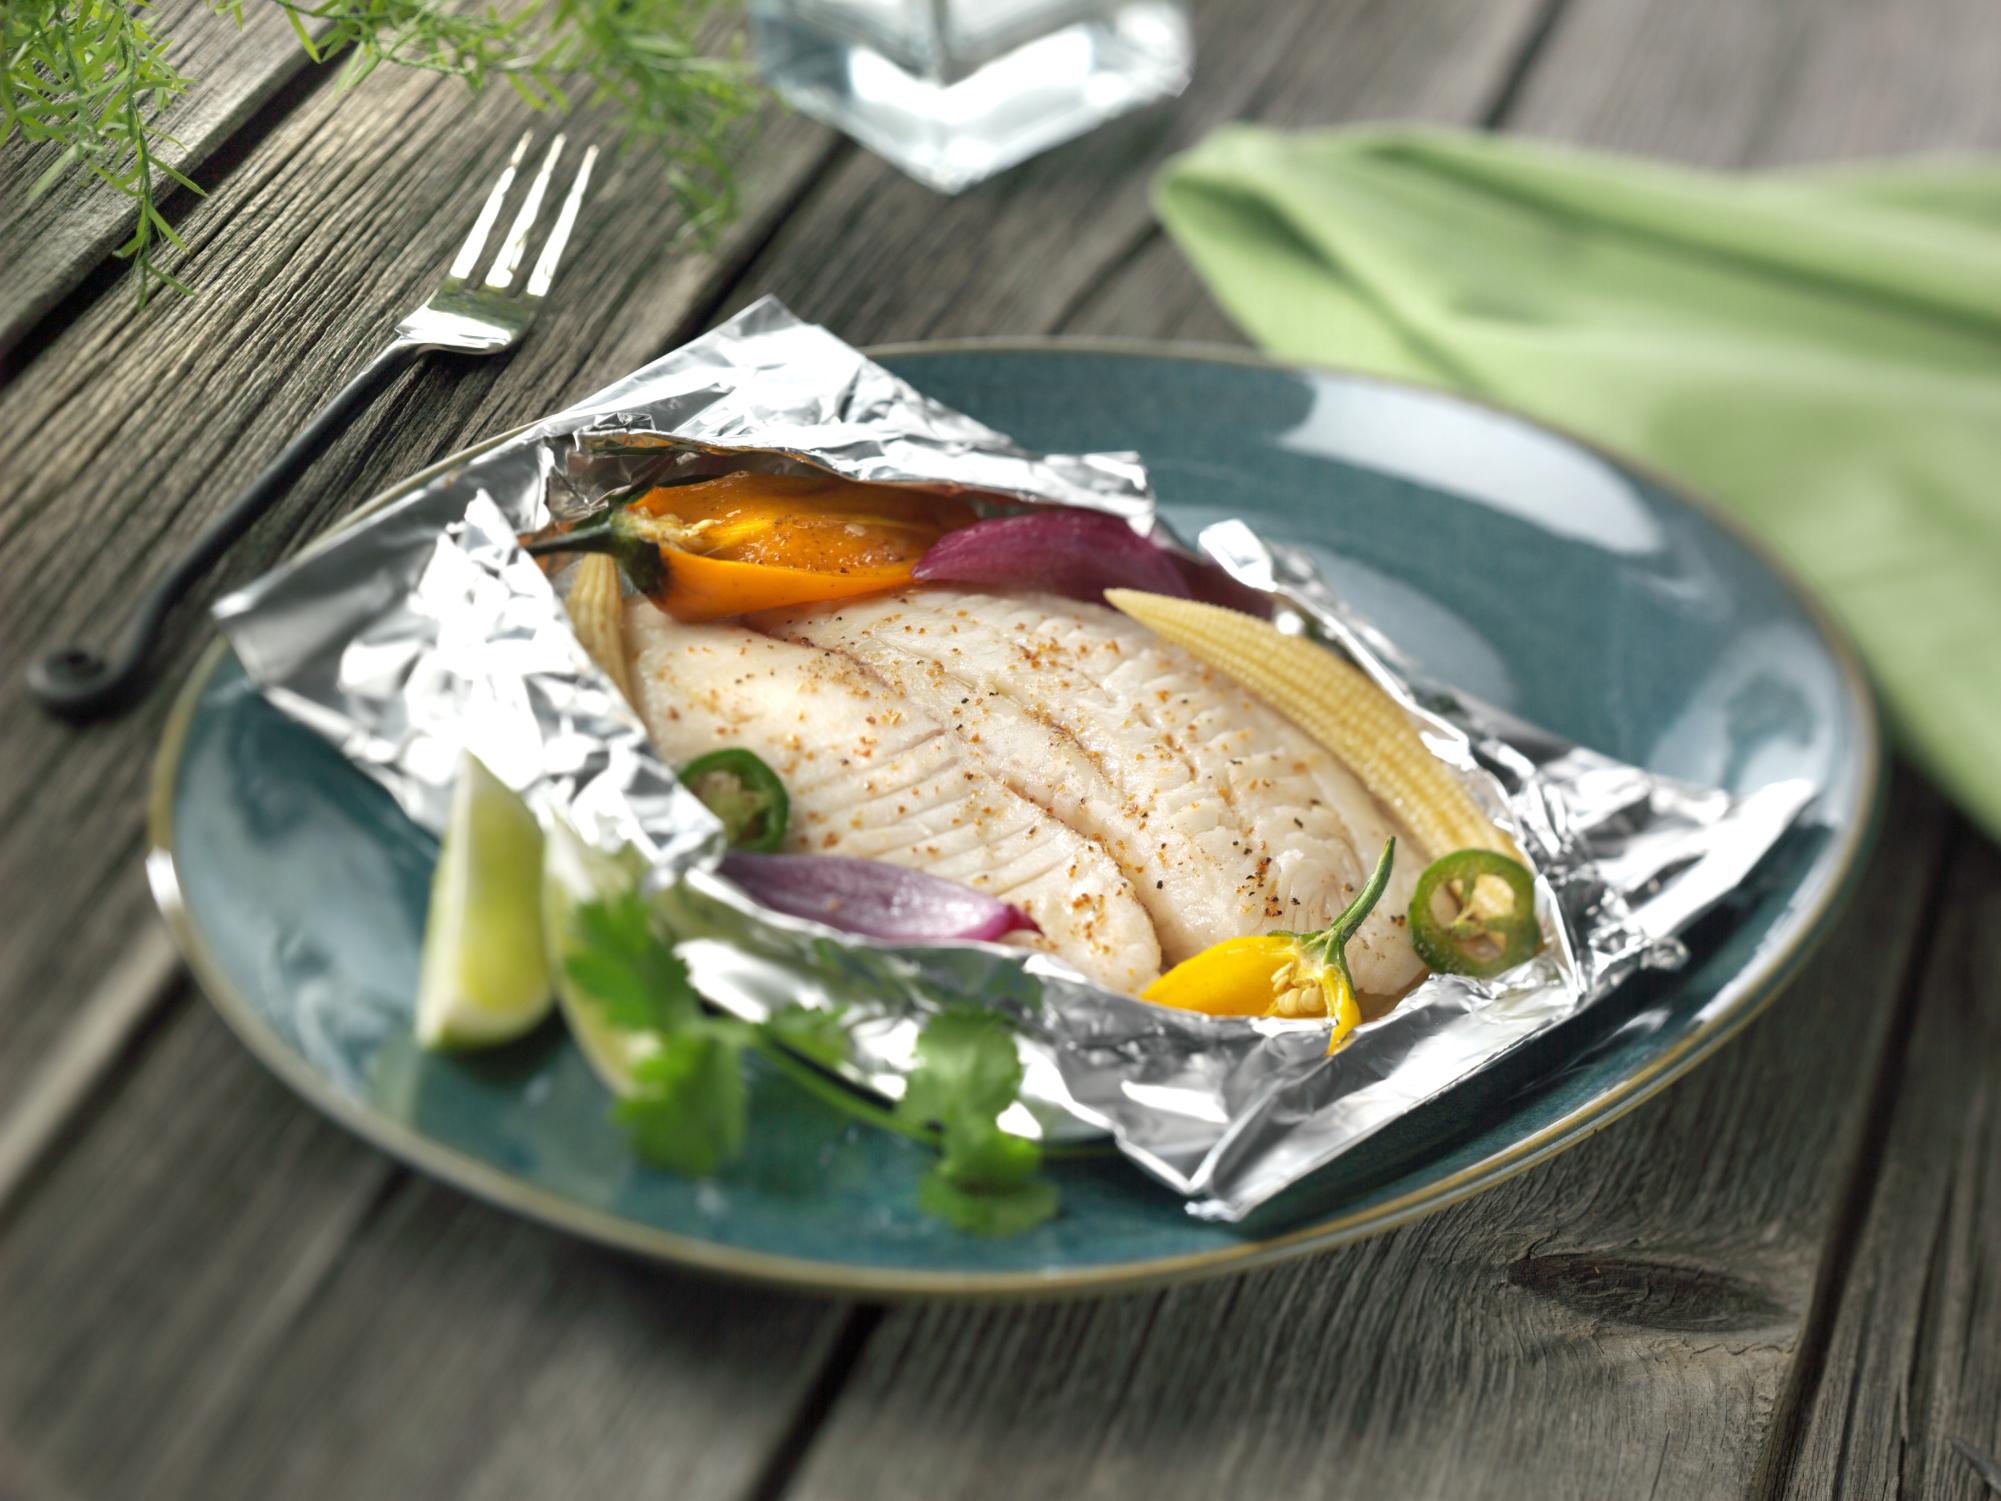 Baking fish in foil. At what temperature and how long does it take to bake the mackerel in the oven